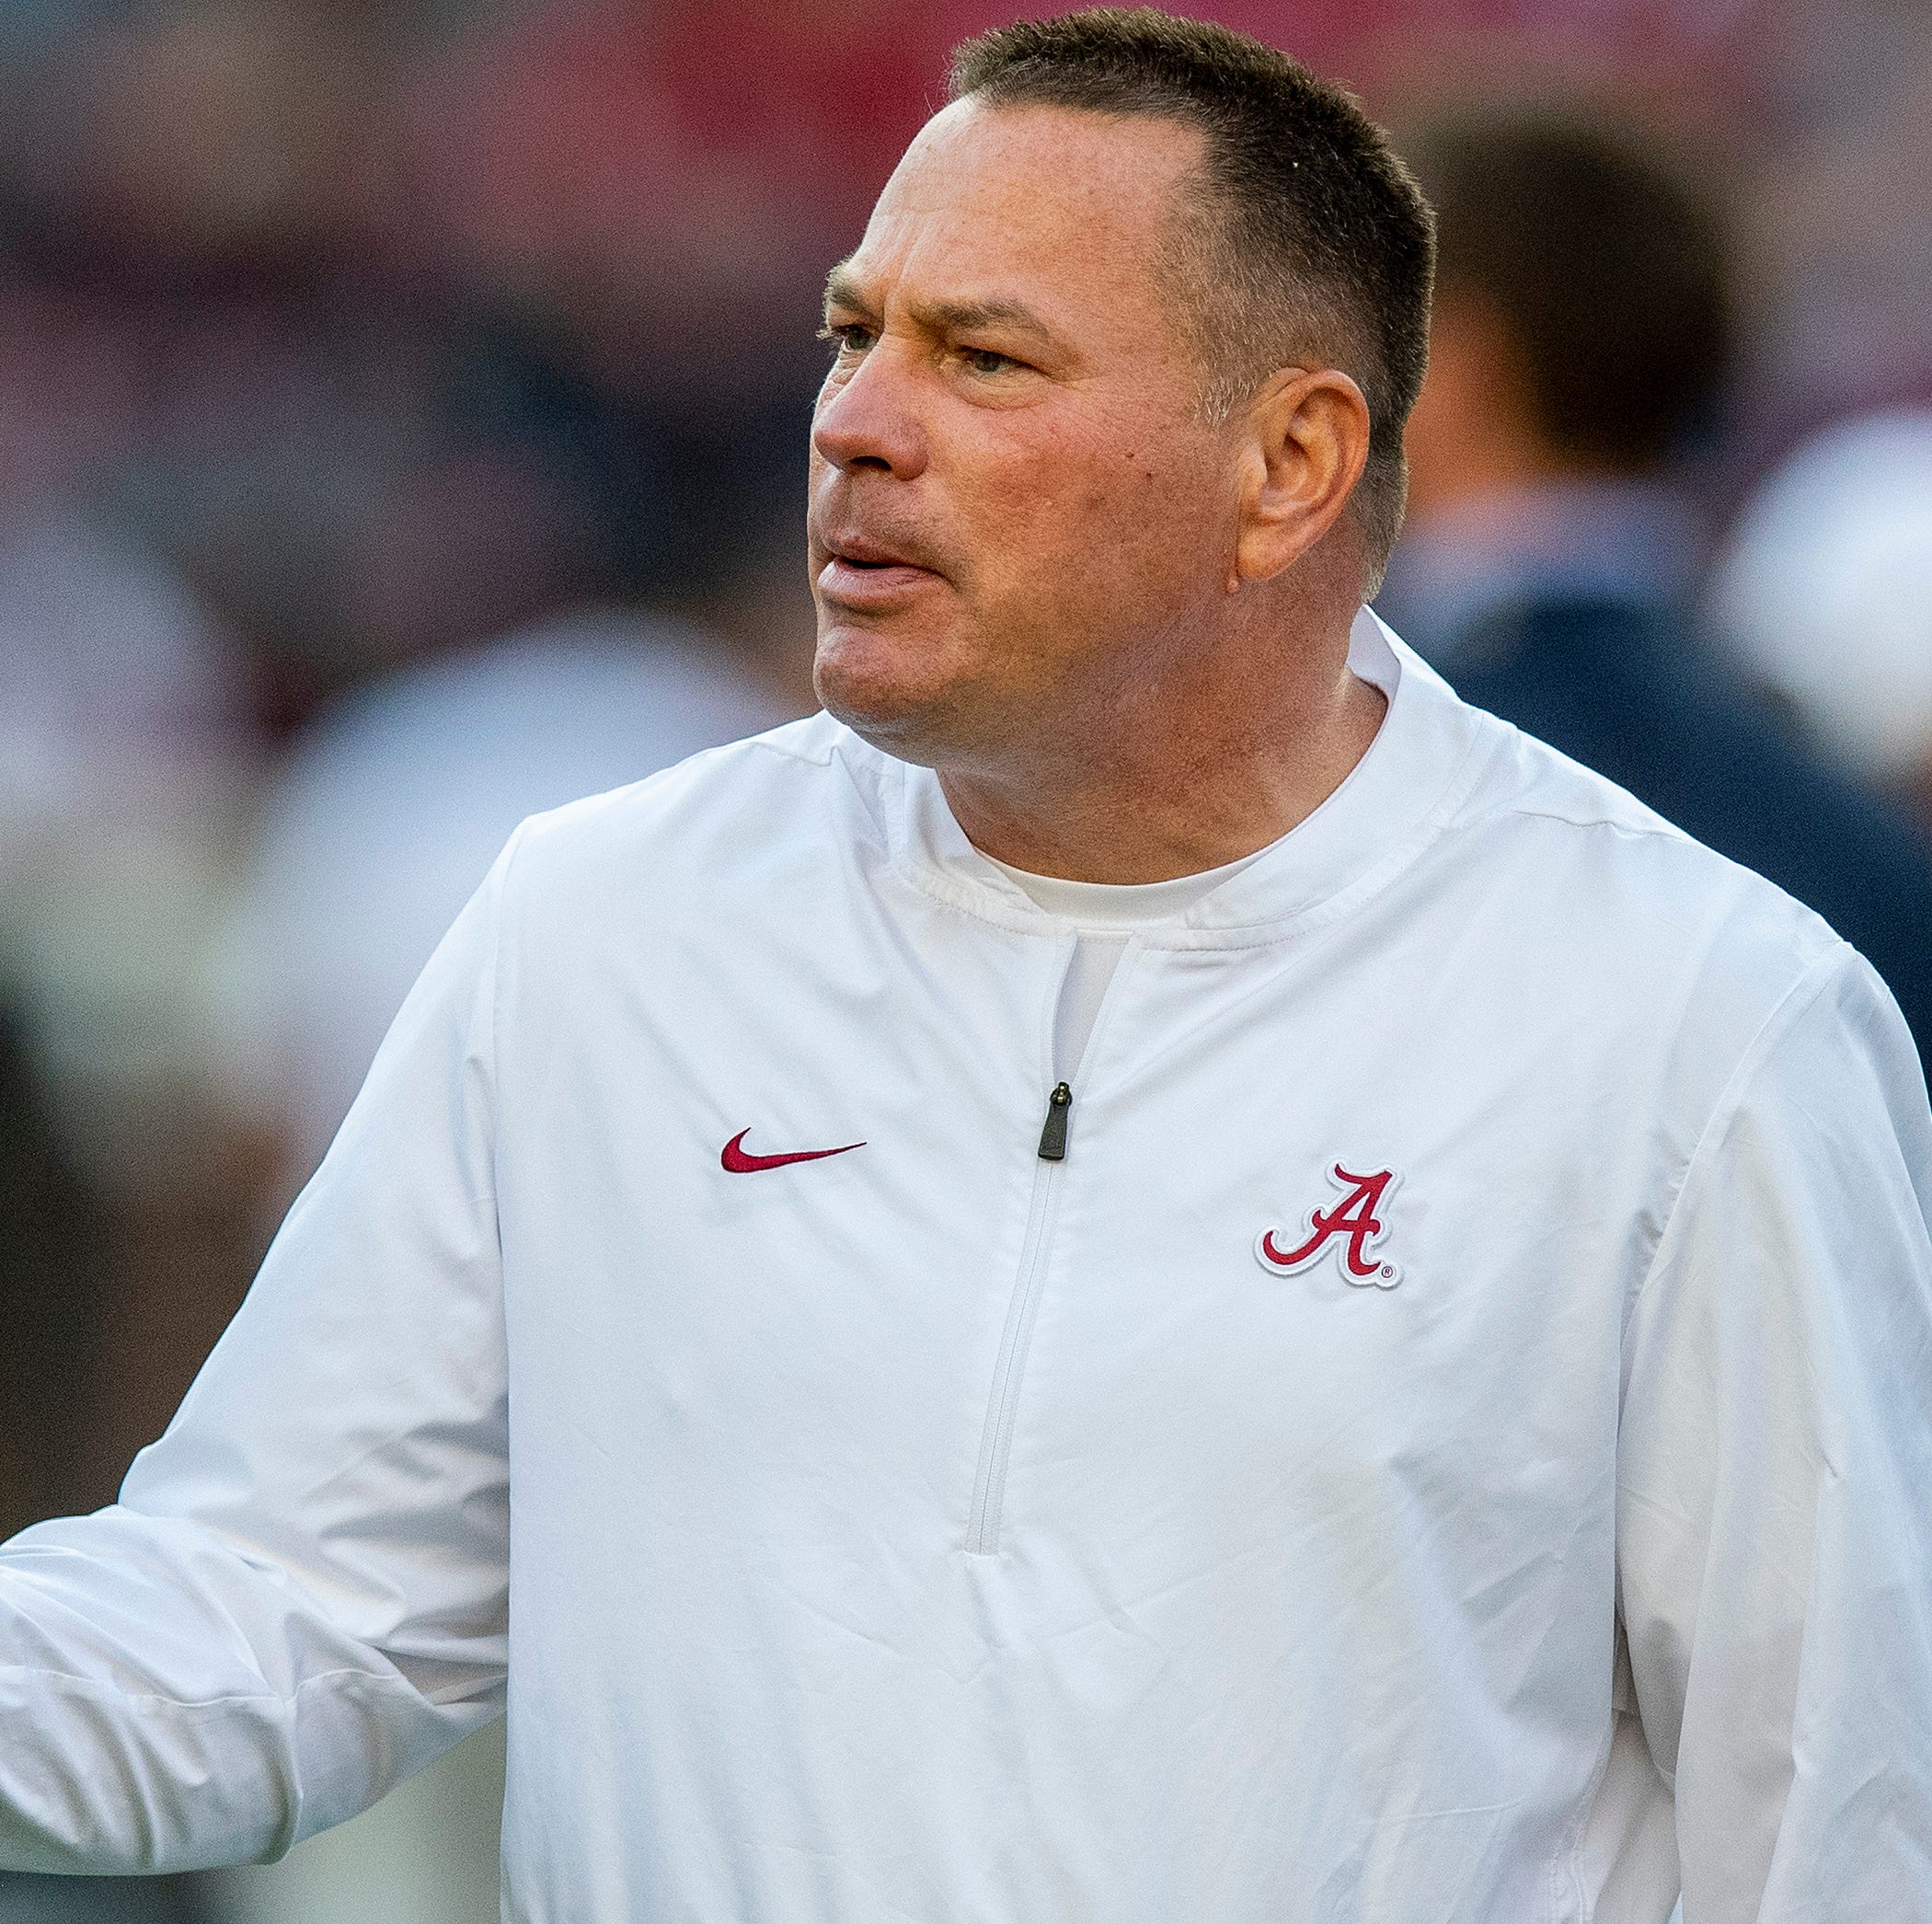 Why Butch Jones adds value to Alabama football, according to Nick Saban